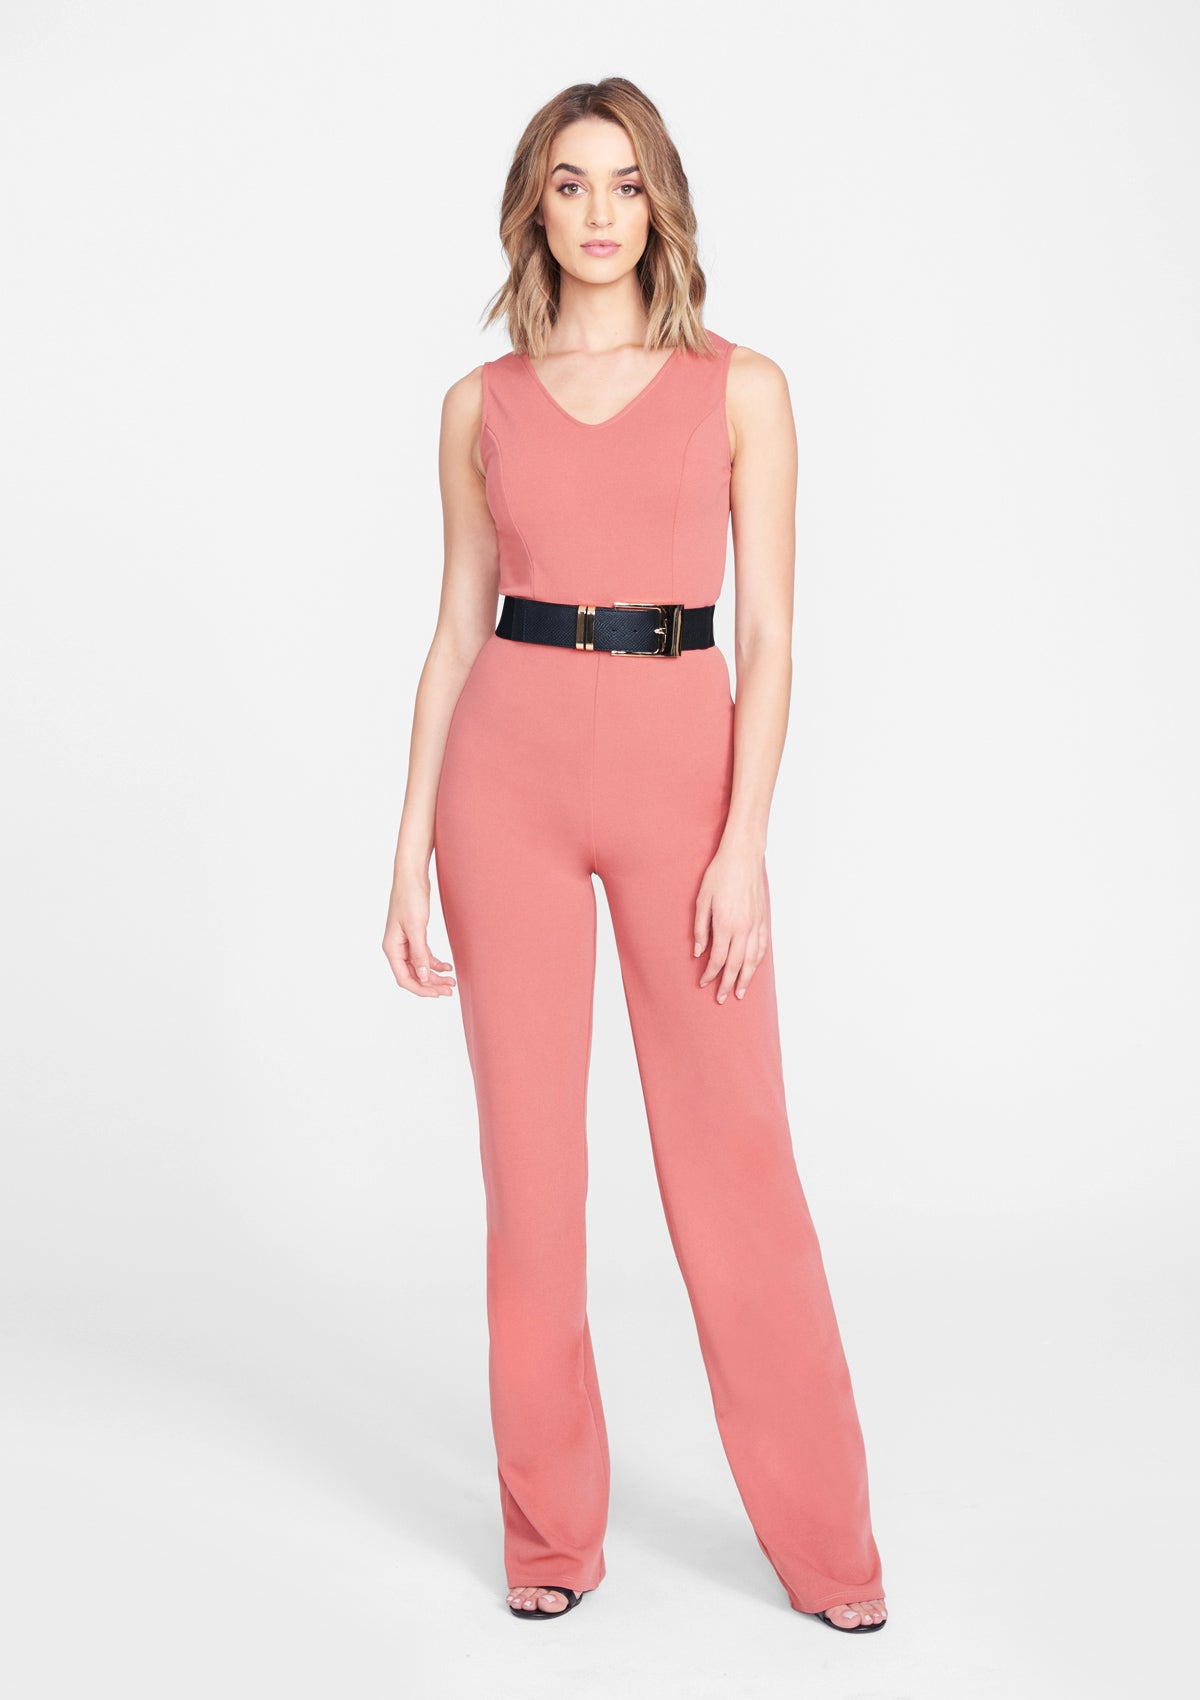 Alloy Apparel Tall Crepe Jumpsuit for Women in Dark Rose Size S   Polyester